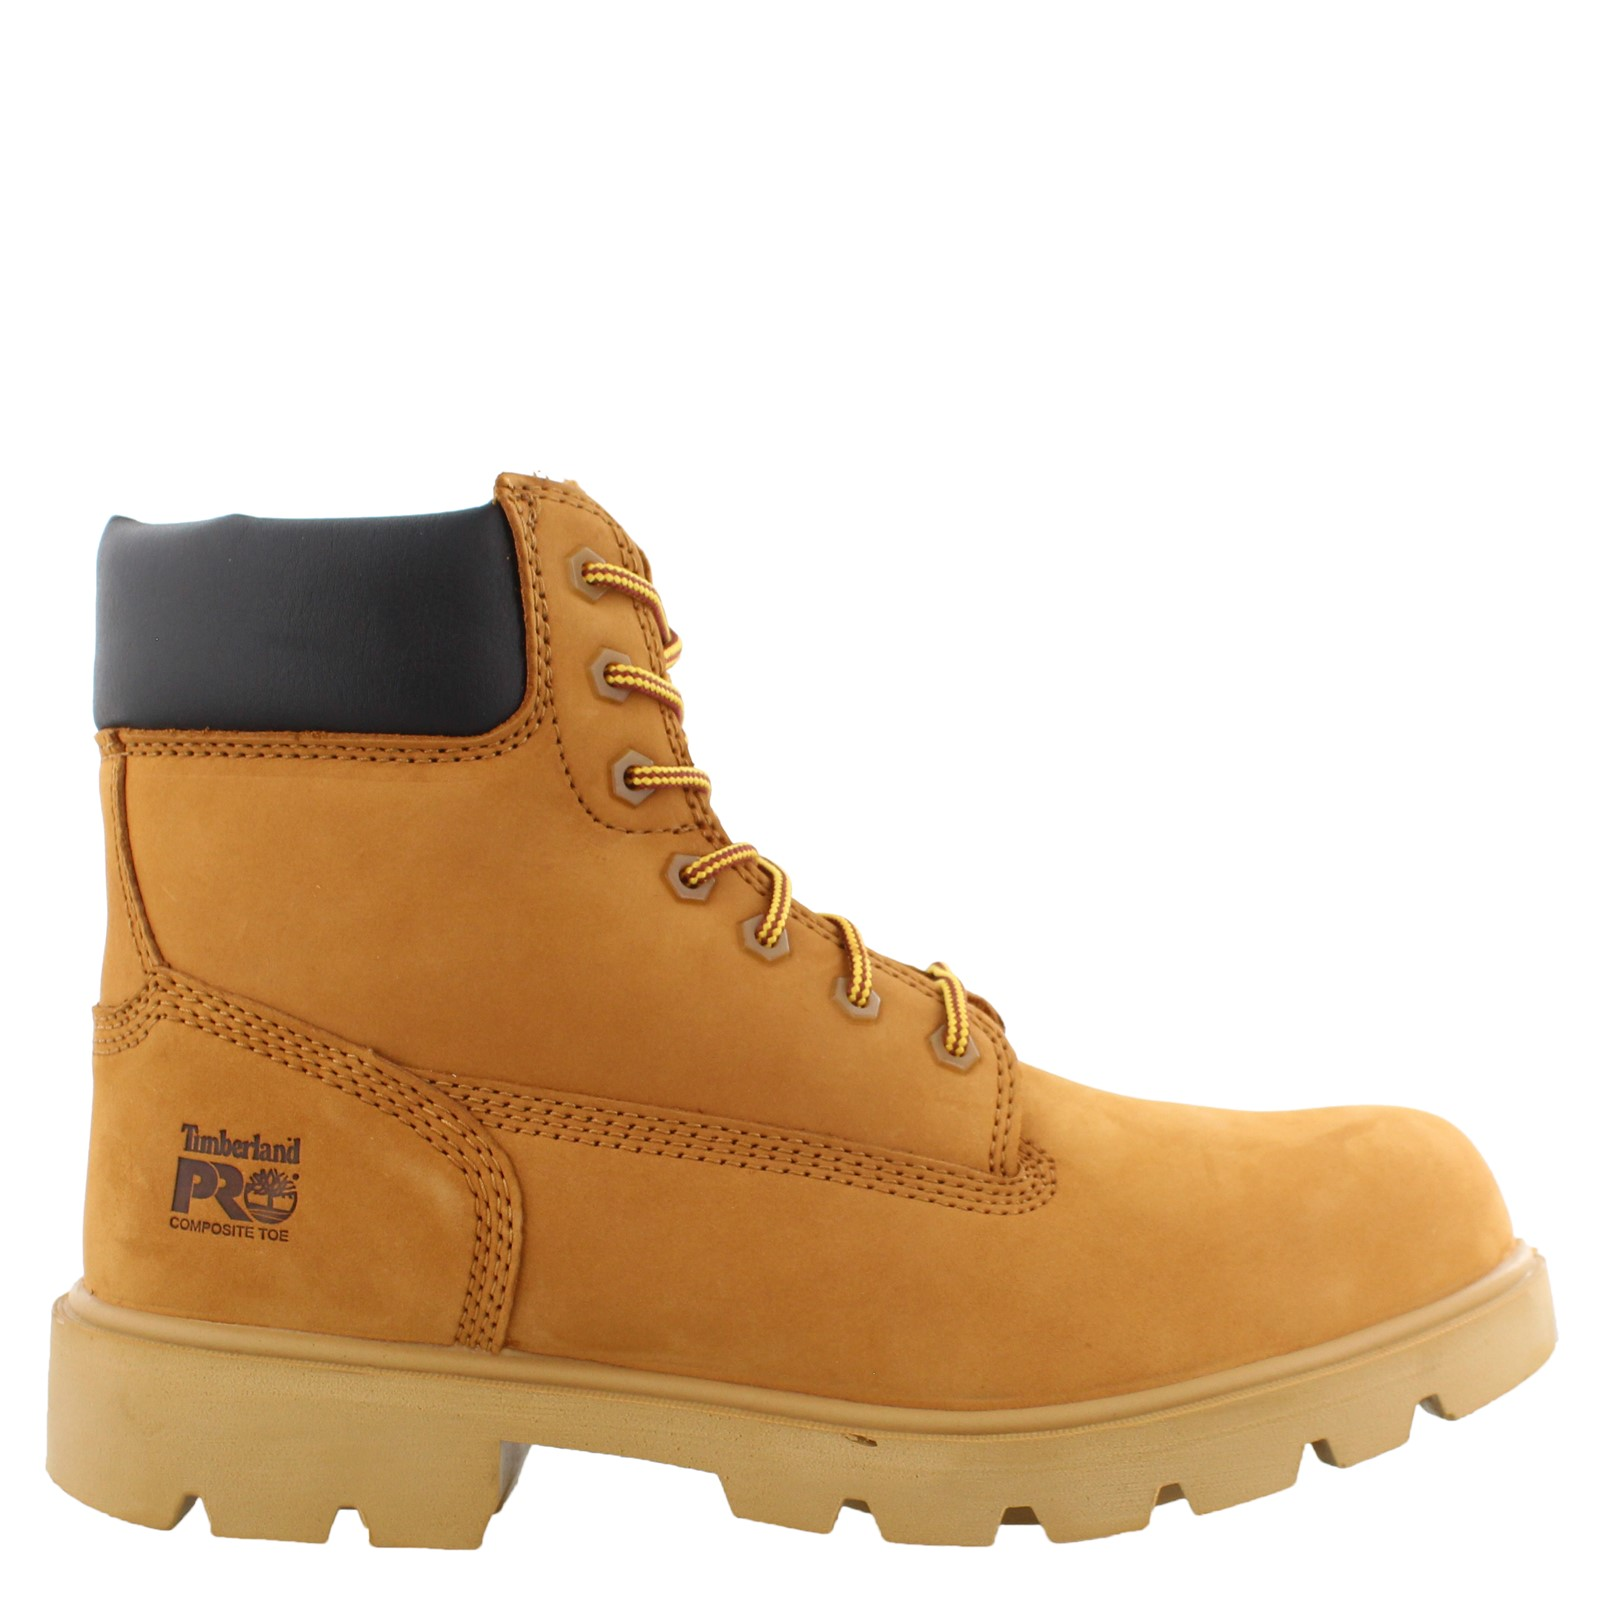 Men's Timberland Pro, Sawhorse 6 Inch Work Boot